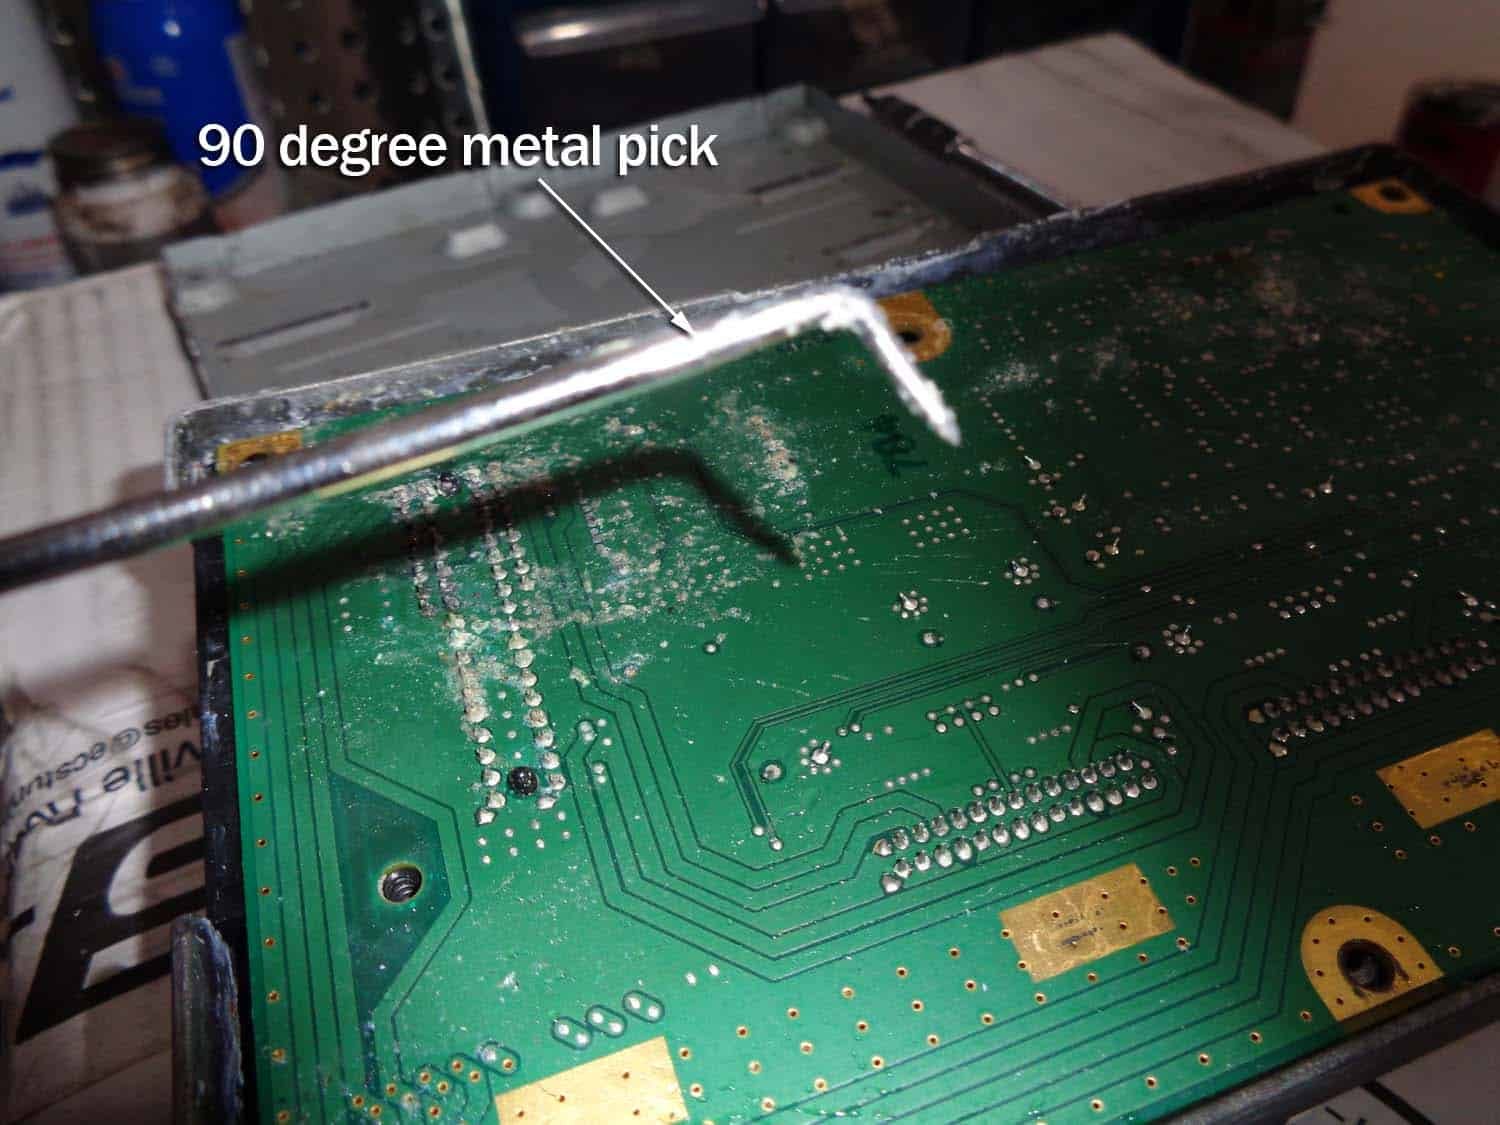 bmw e90 amplifier water damage repair - use a metal pick to remove the circuit board